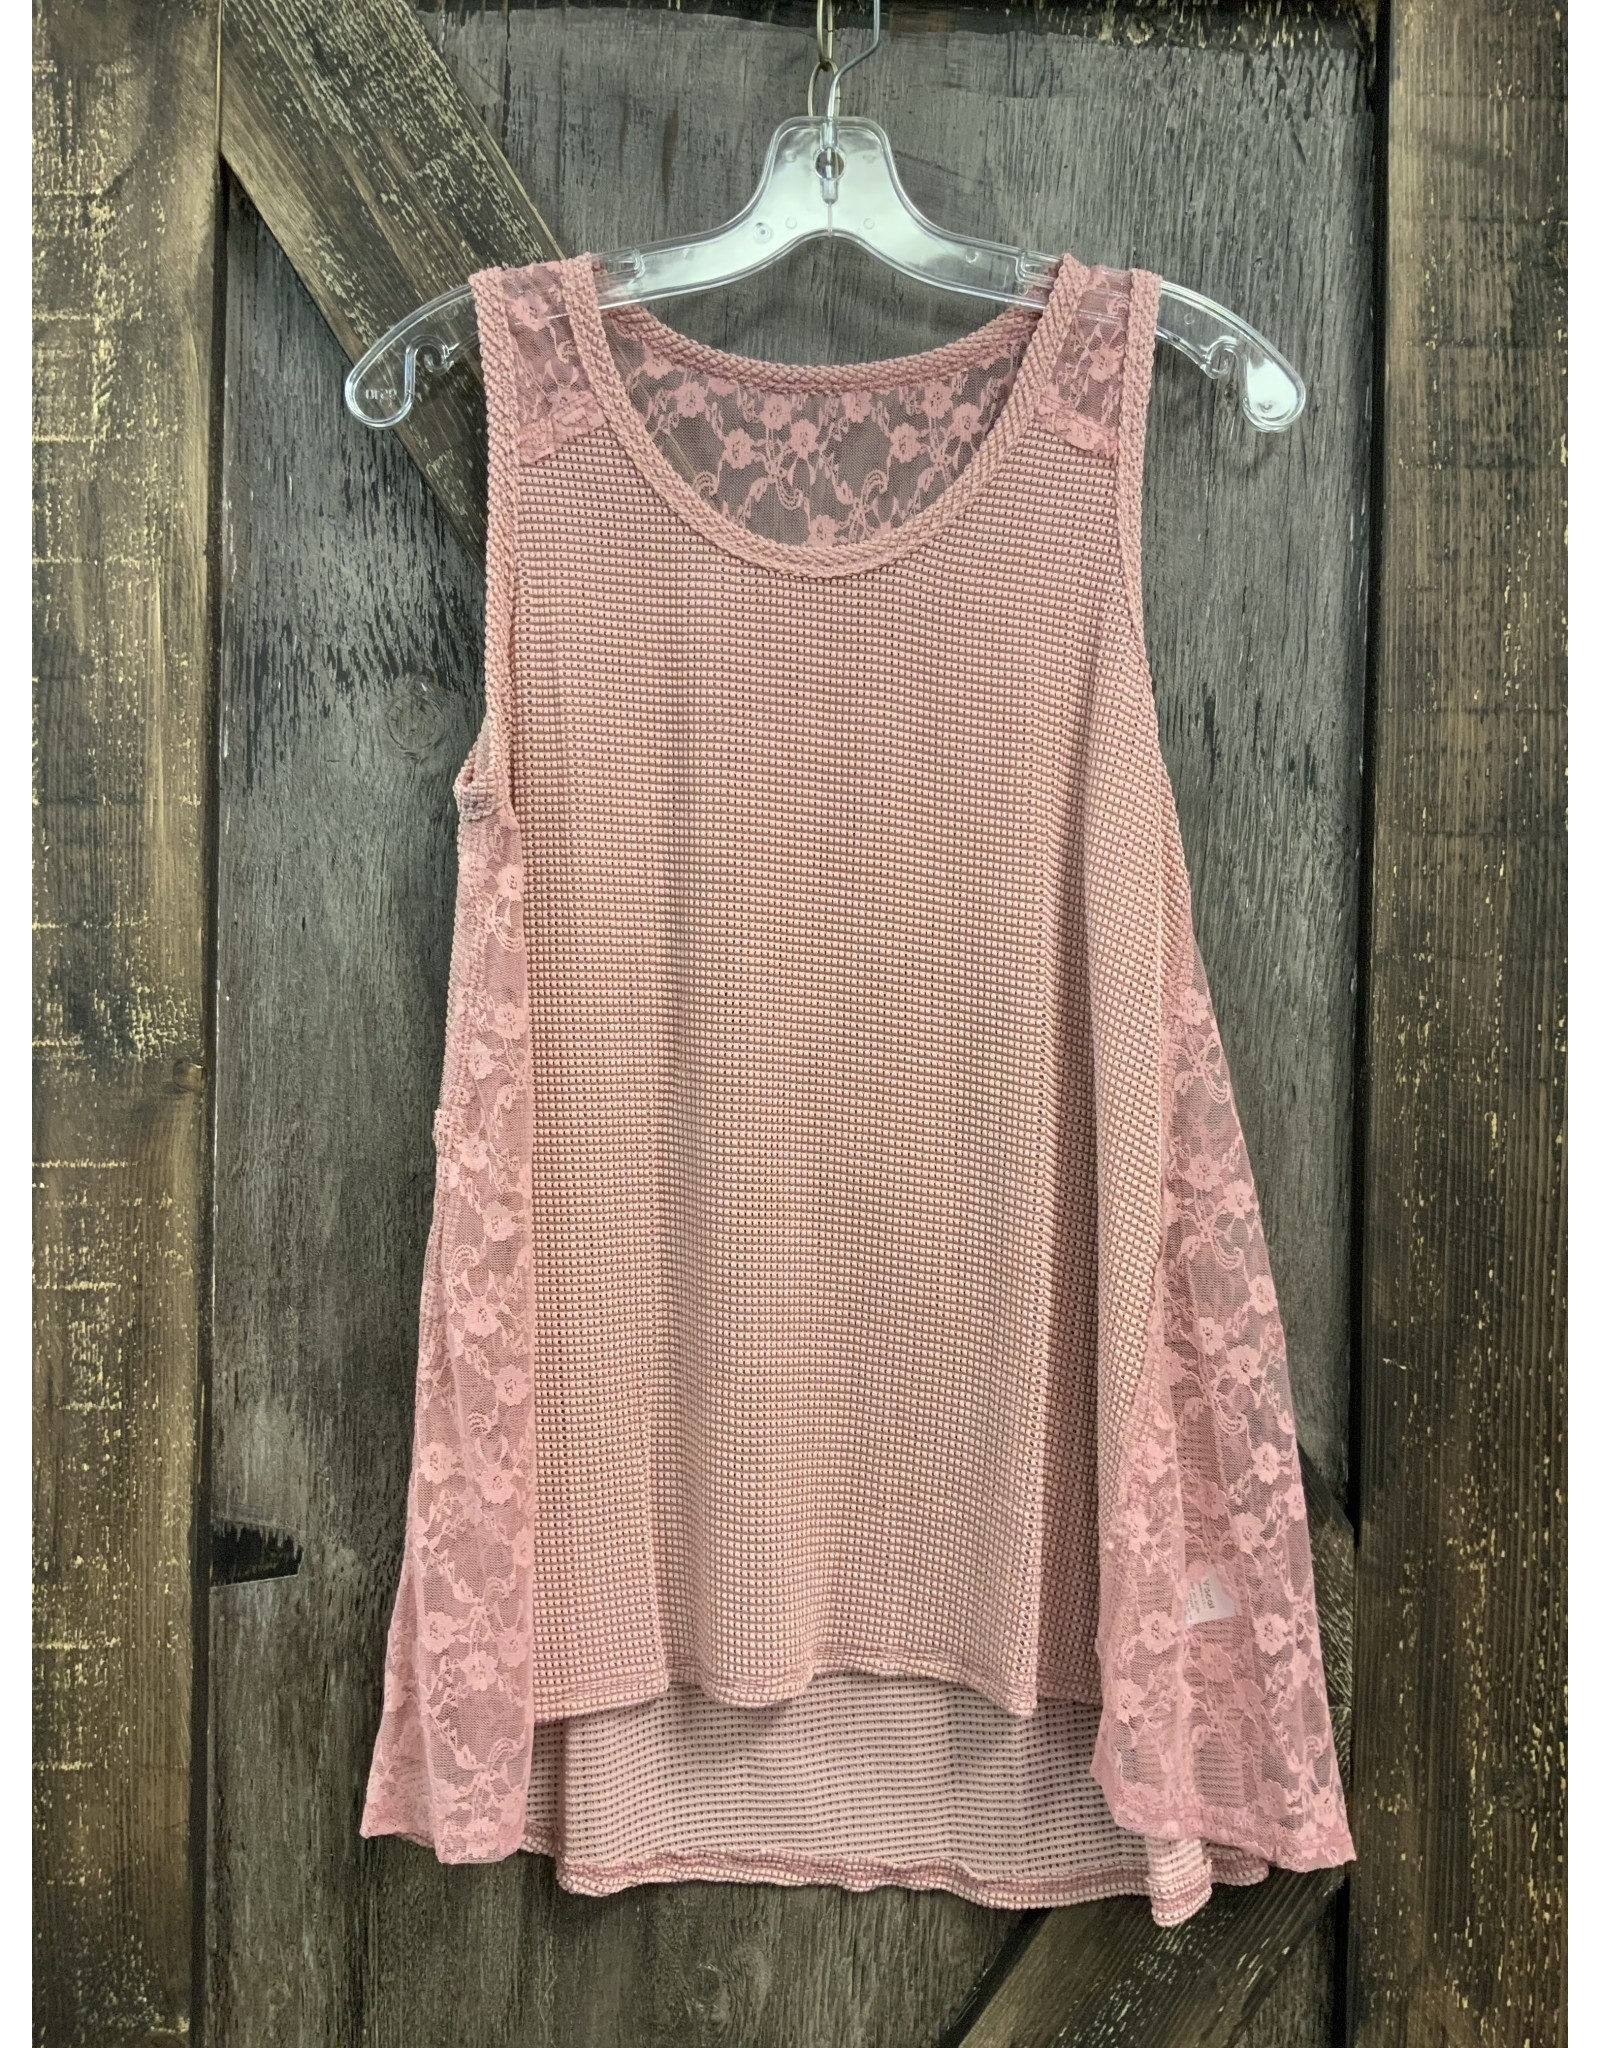 SLEEVELESS MIX MEDIA LACE TUNIC TOP